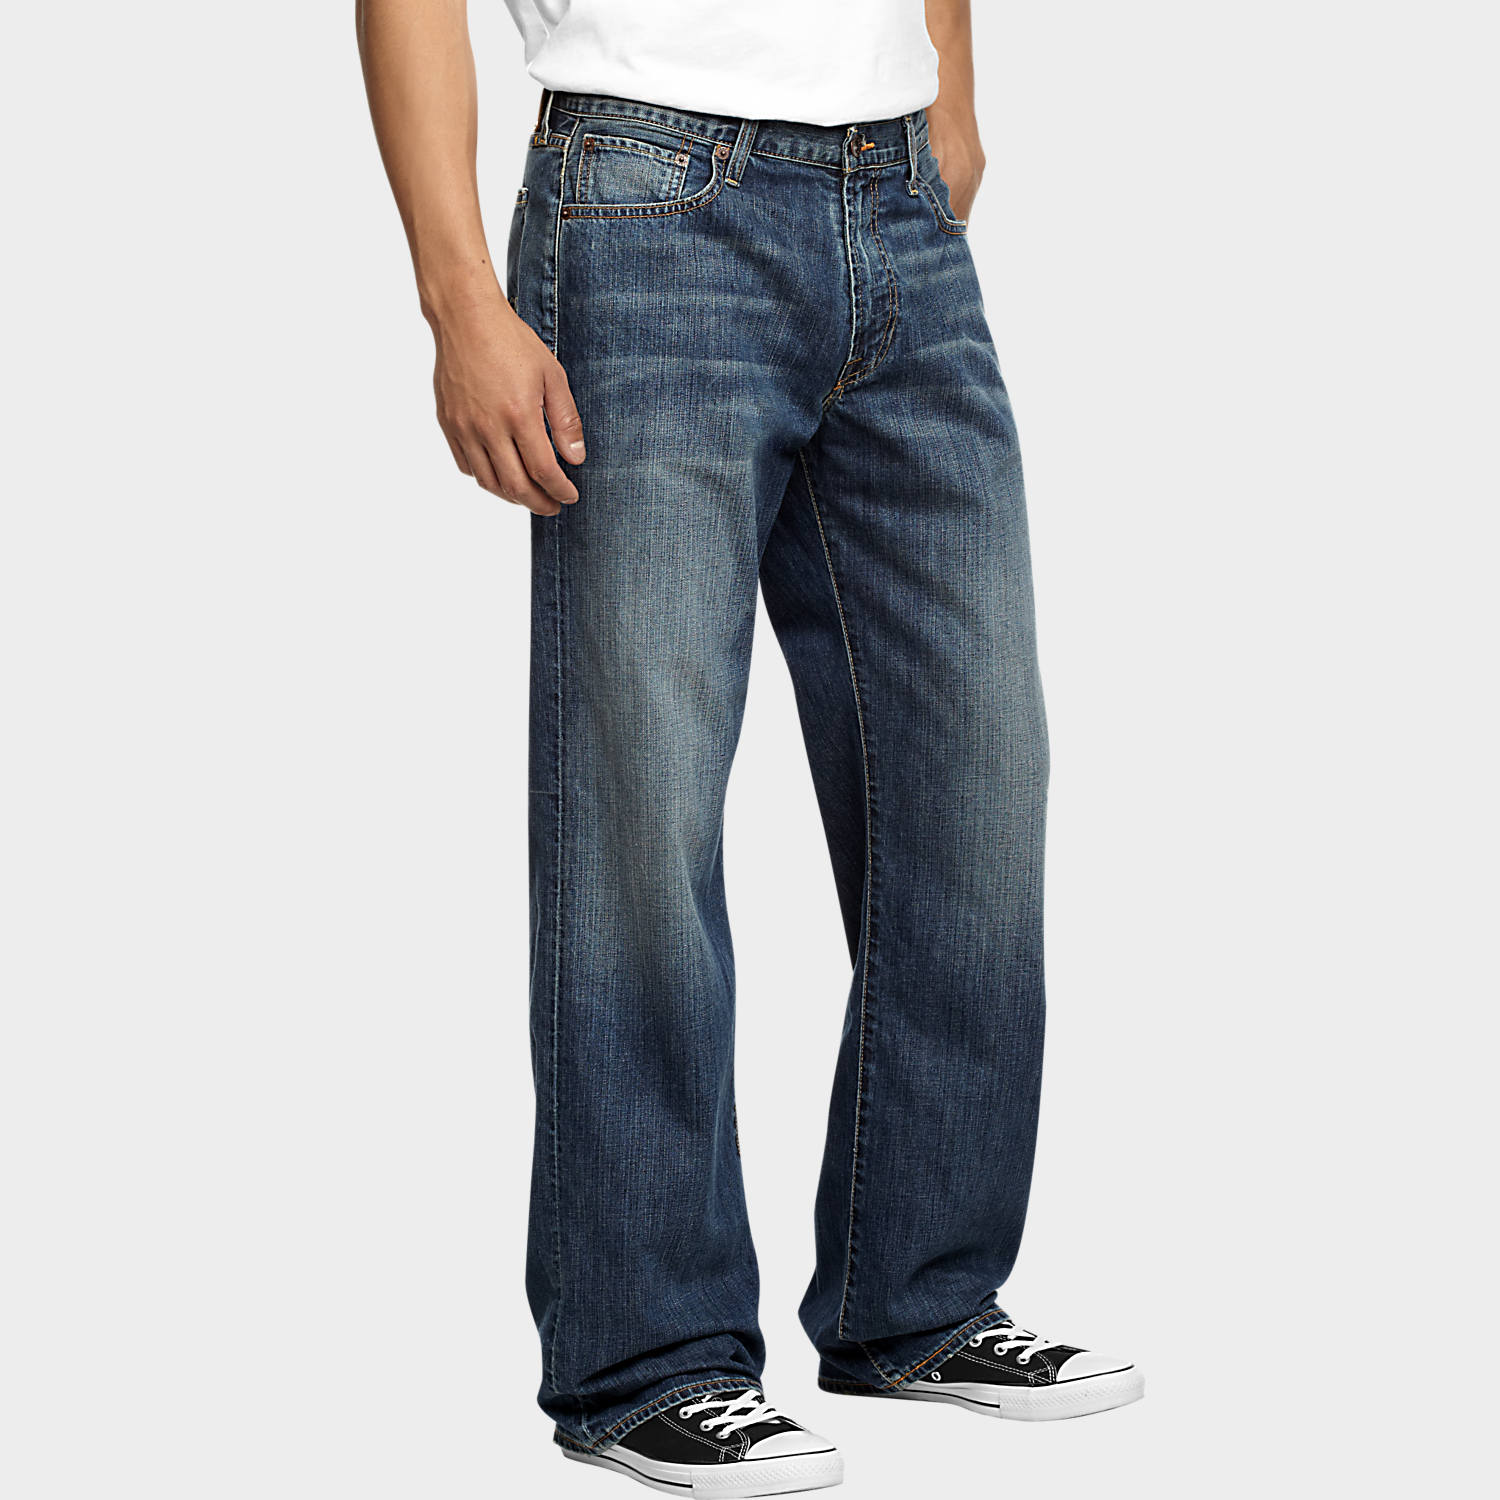 Loose Fit Jeans for Men lucky brand 181 medium wash relaxed fit jeans DHHVQTA